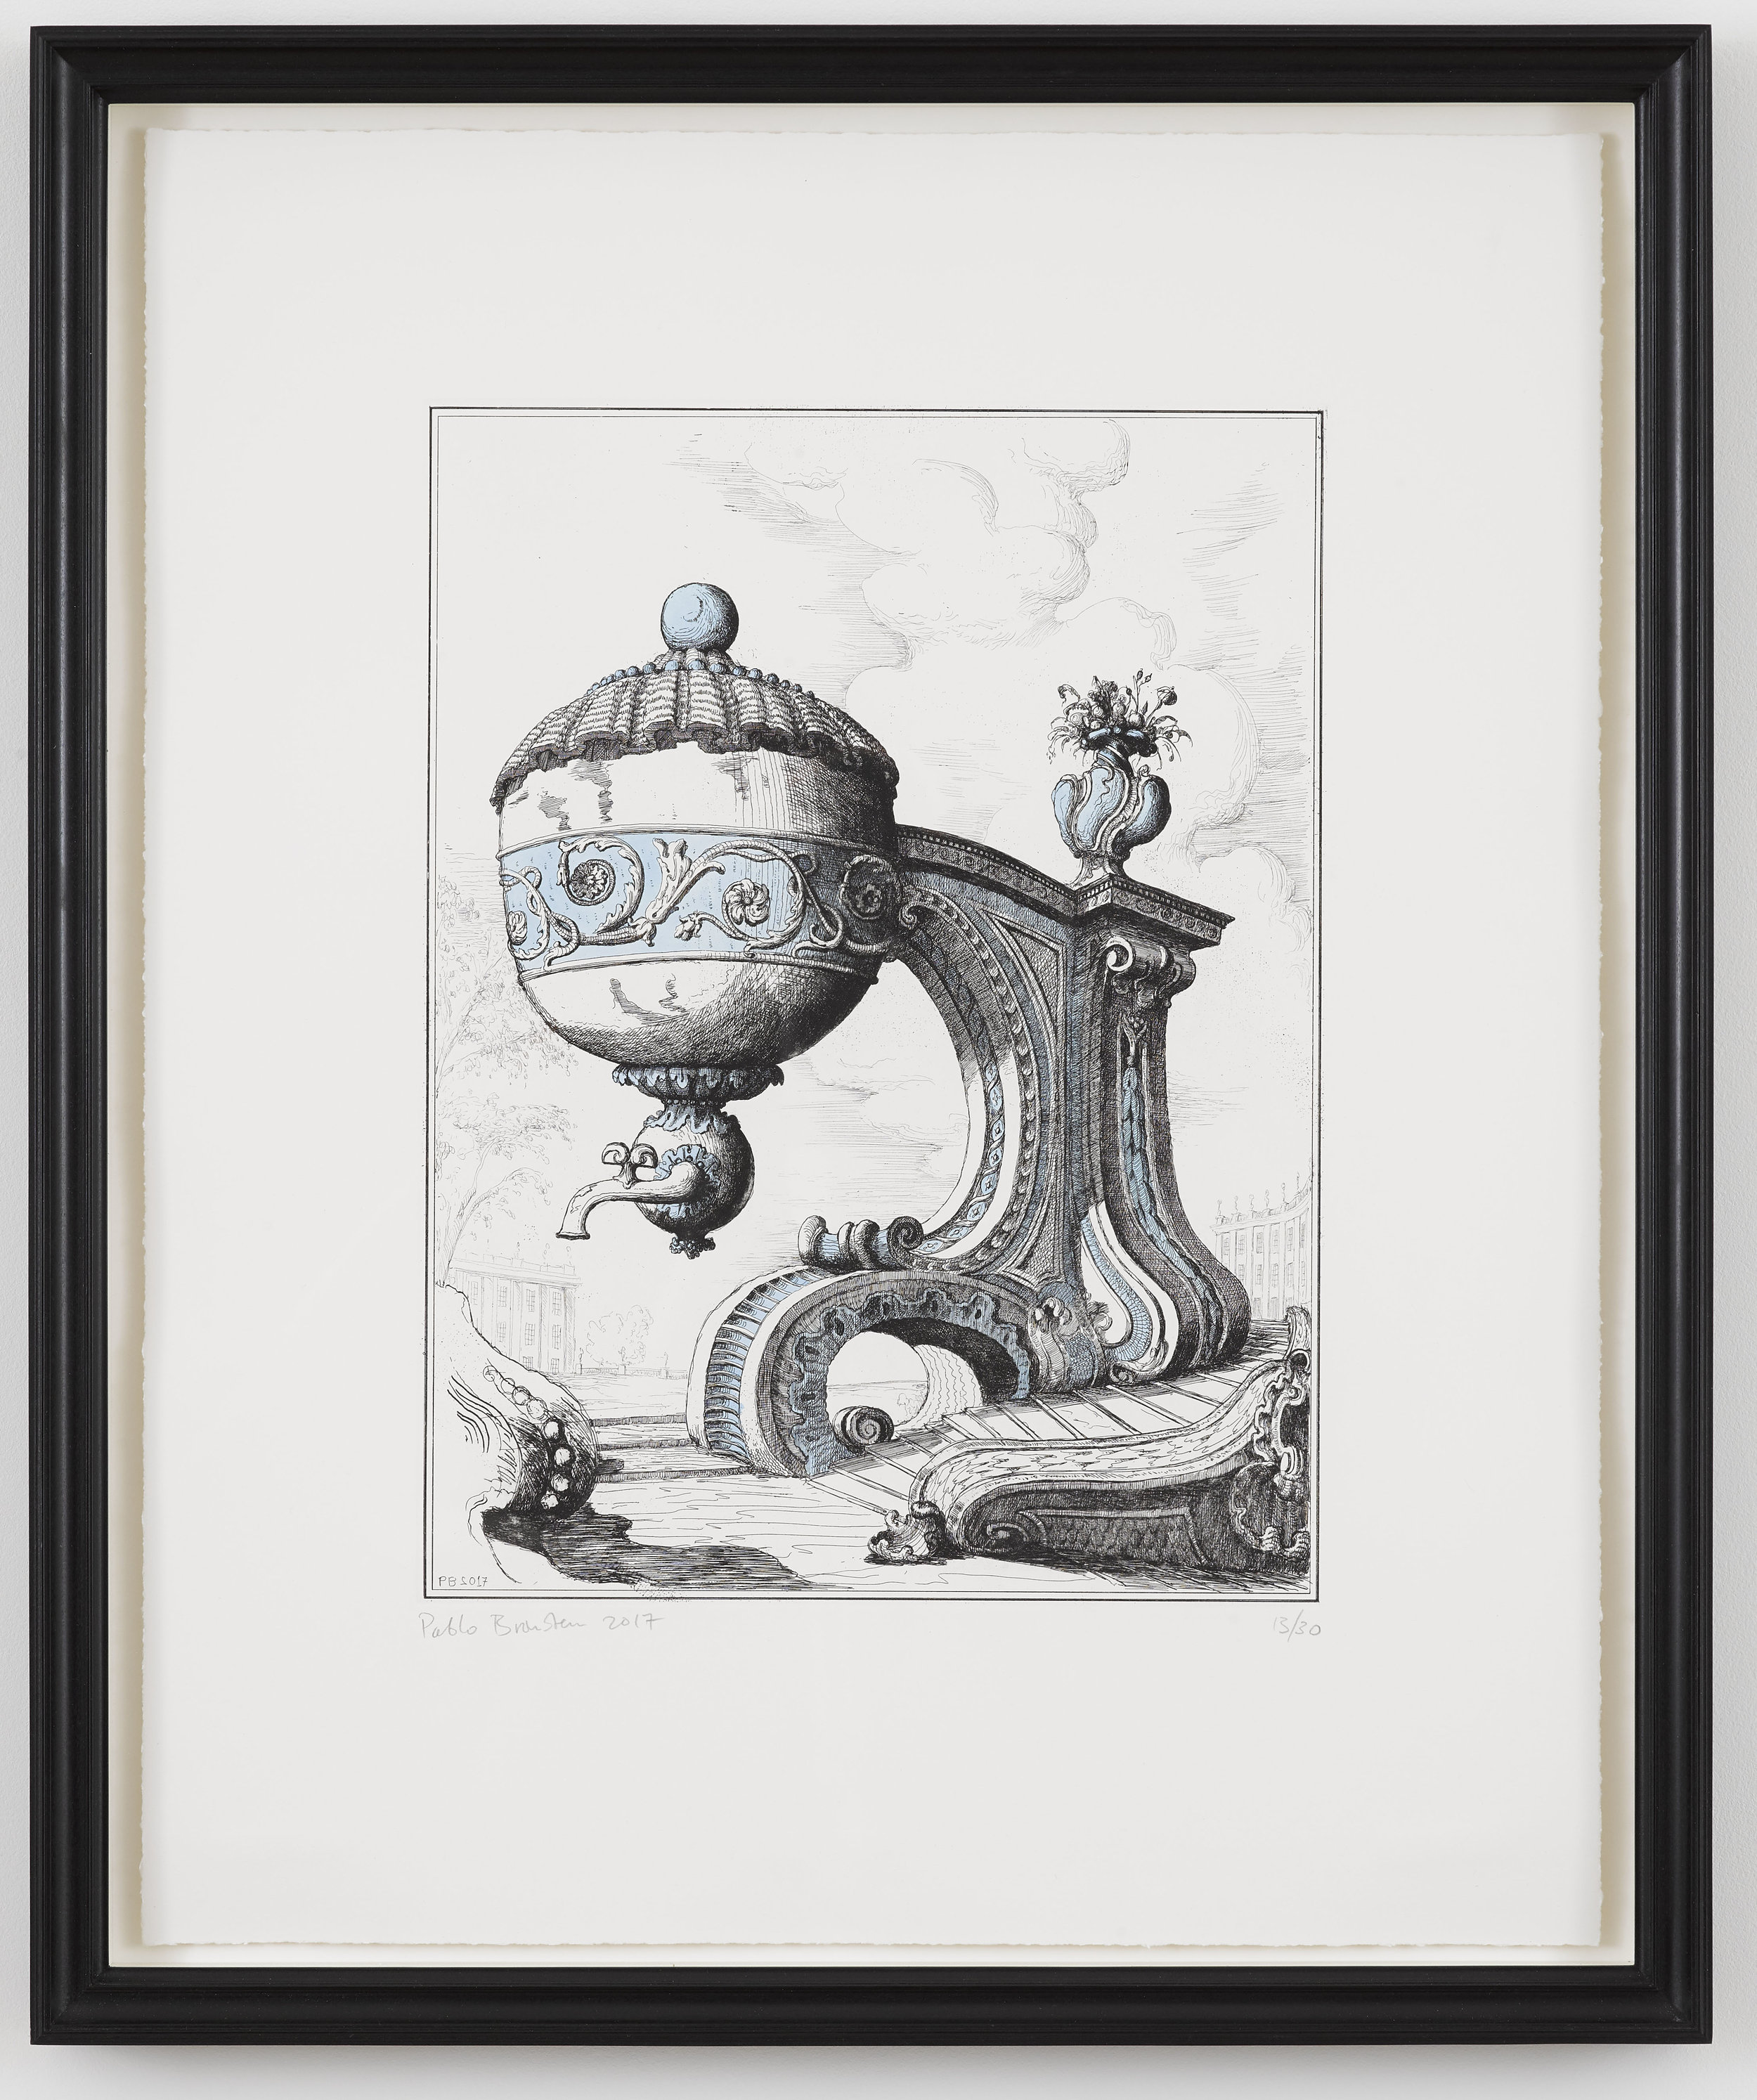 P­ablo Bronstein,  T ea Urn on Architectural Support II , 2017, Frame size: 66 x 55 cm,  Hand ground etching, hand-coloured with ultra blue and violet ink on Fabriano Tiepolo 280 gsm paper